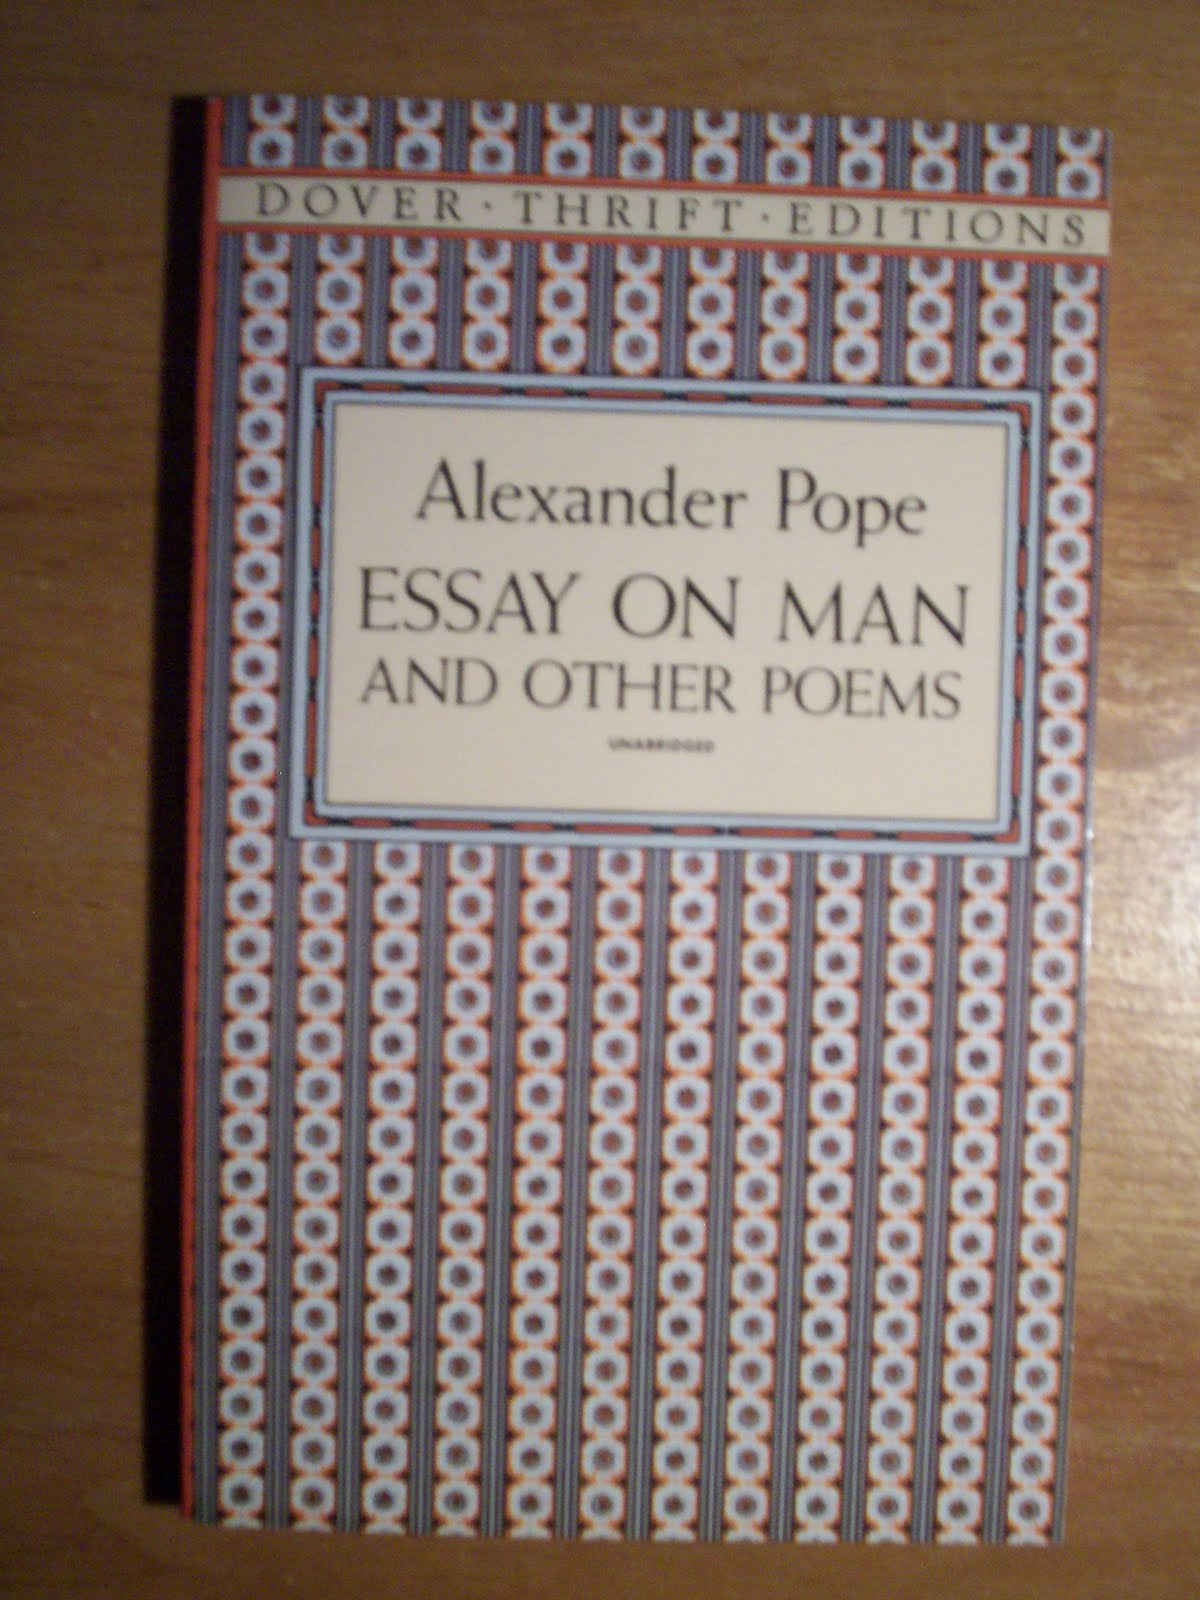 an essay on man alexander pope sparknotes 91 121 113 106 an essay on man alexander pope sparknotes